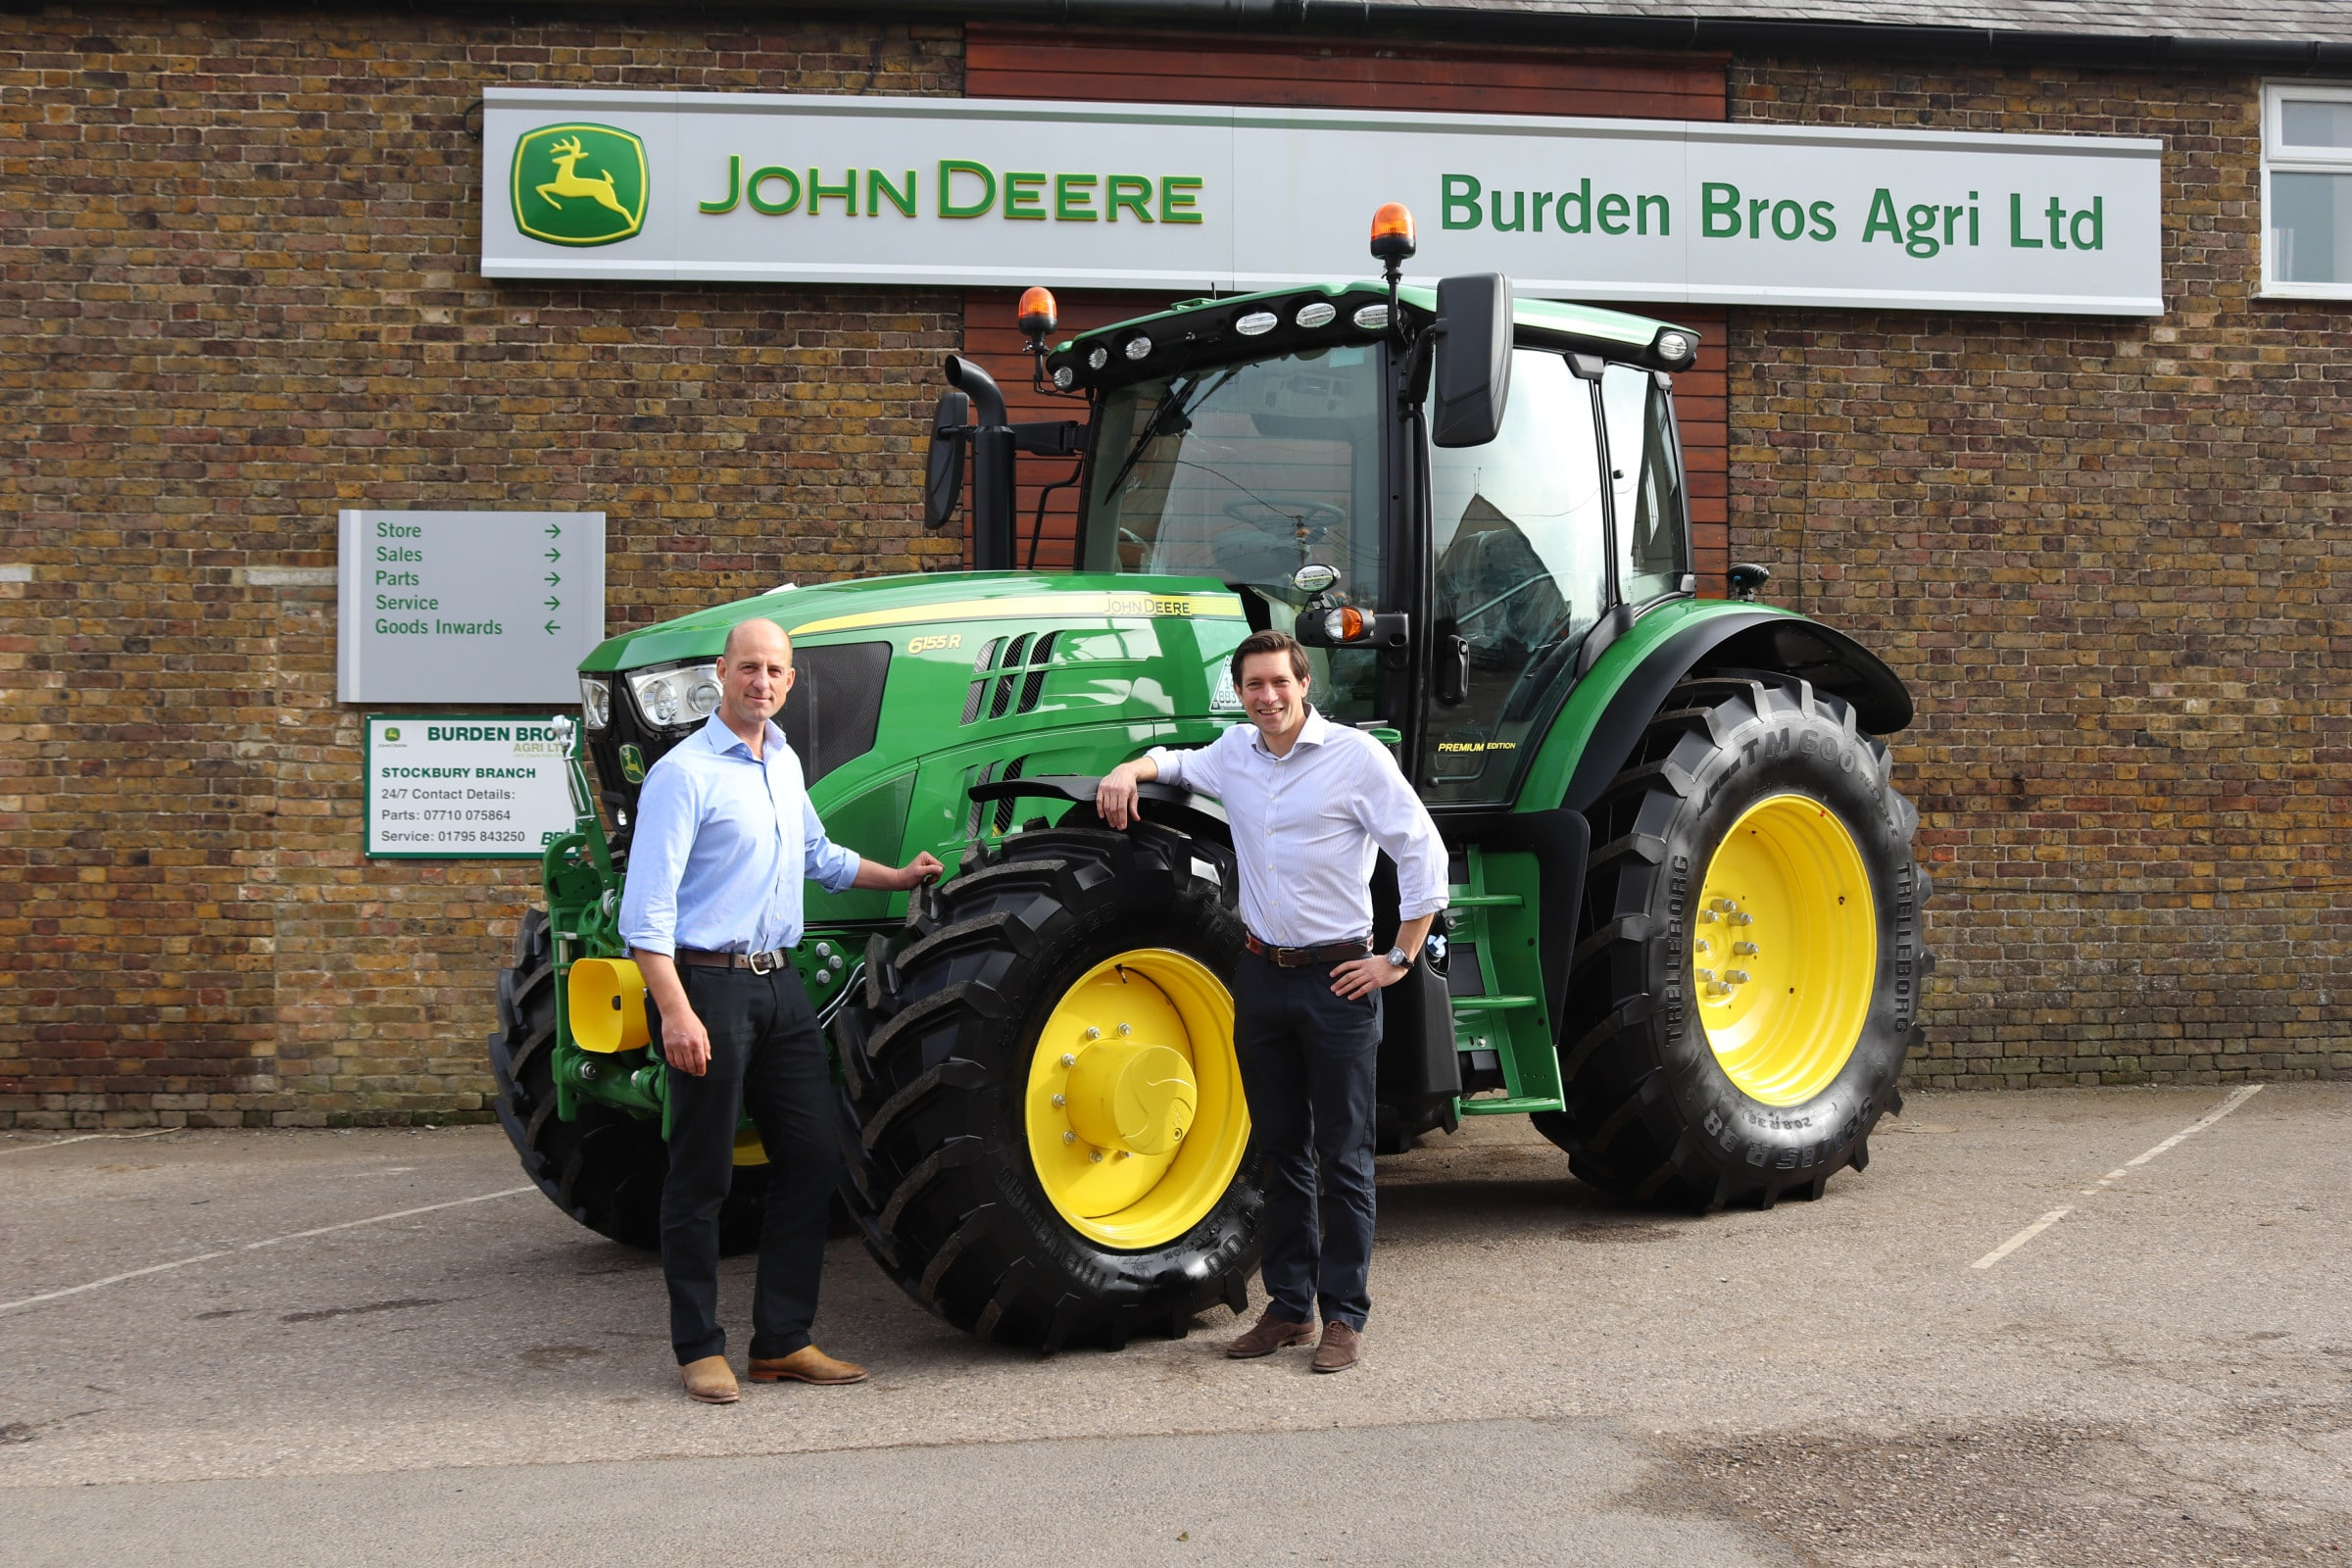 P Tuckwell Ltd complete acquisition of Burden Bros Agri Ltd